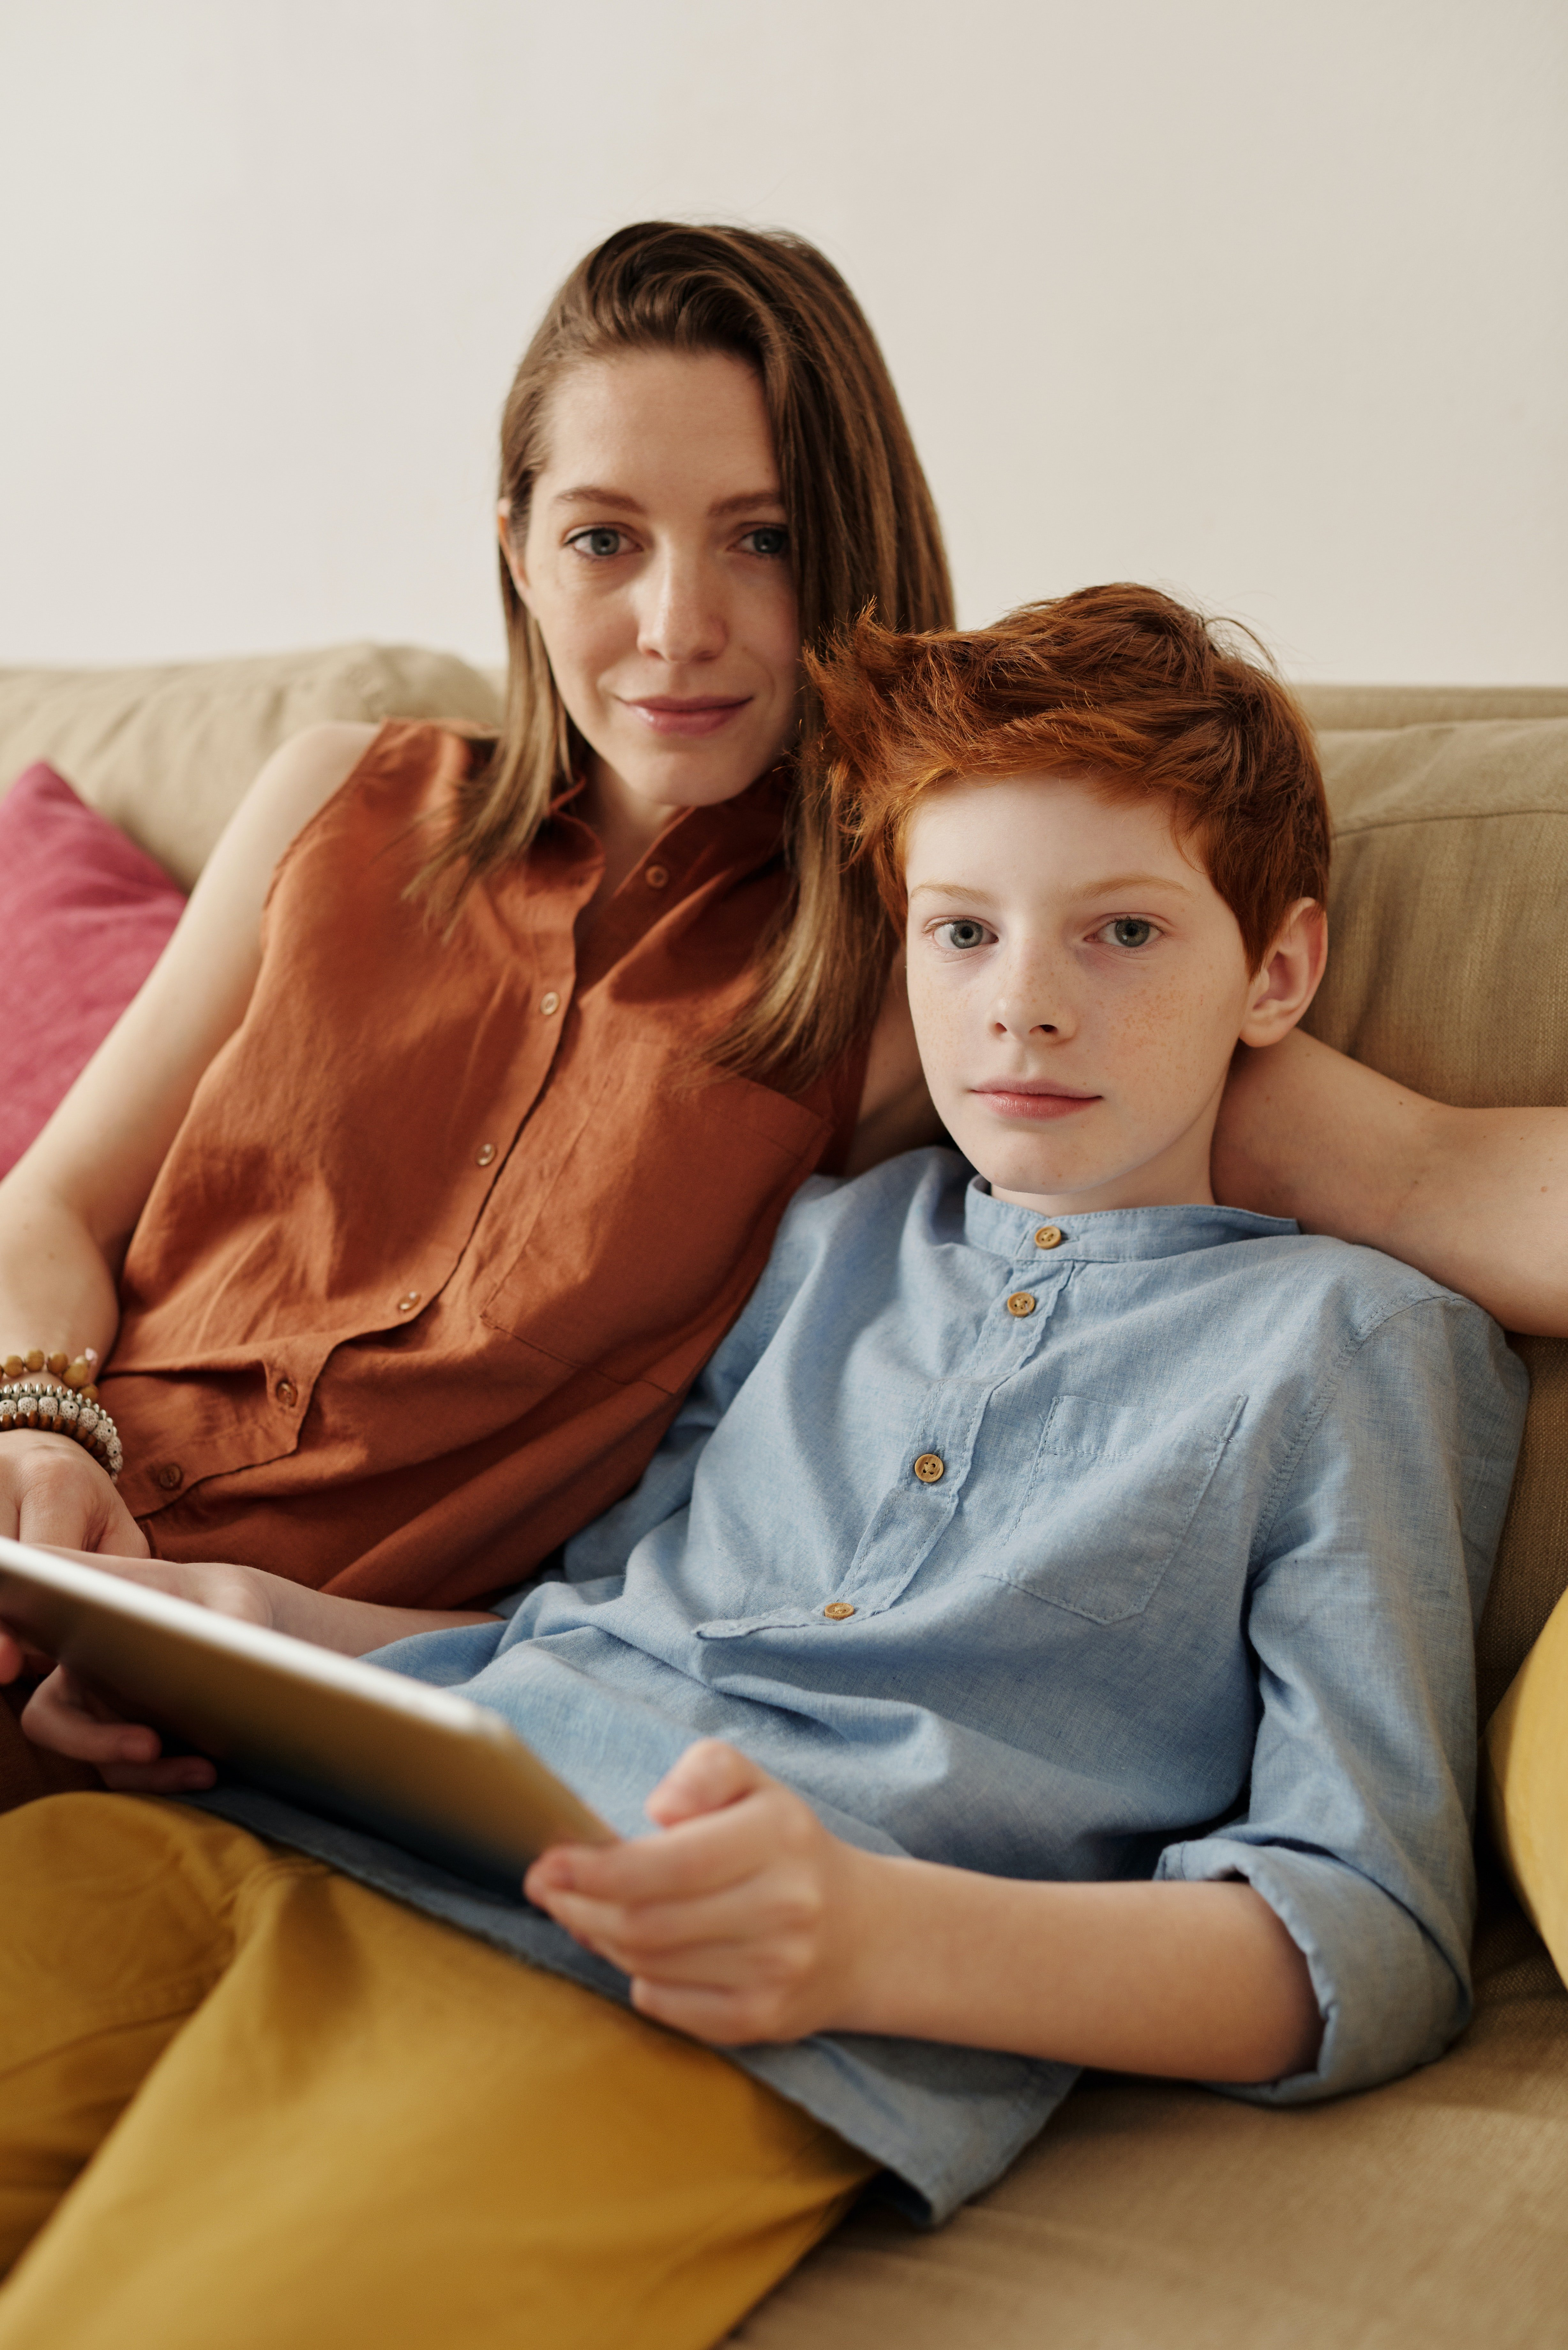 Mother and son sitting on a sofa   Photo: Pexels